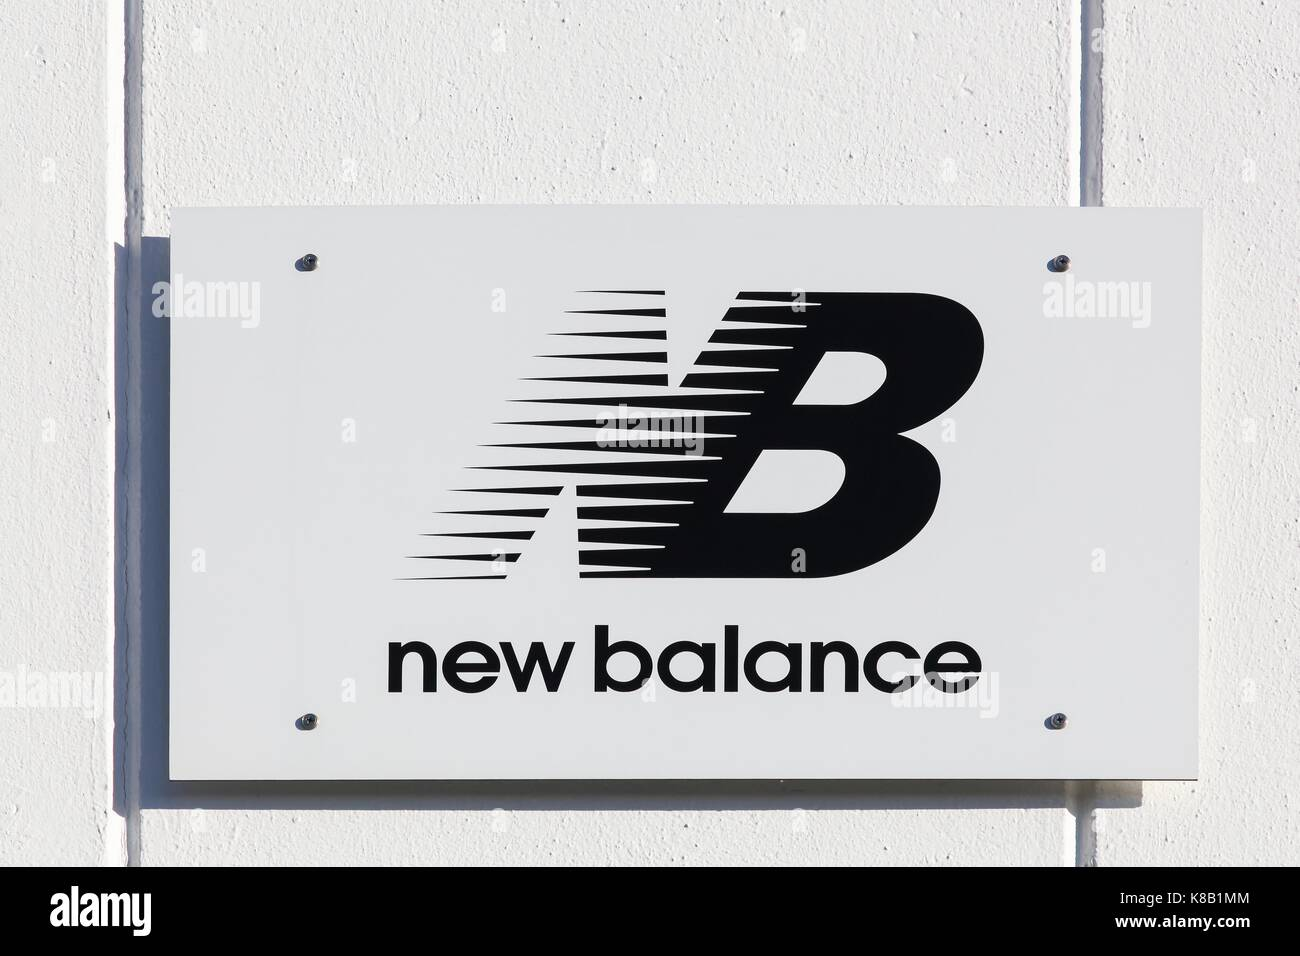 New balance shoes stock photos new balance shoes stock images merignac france june 5 2017 new balance logo on a wall biocorpaavc Choice Image